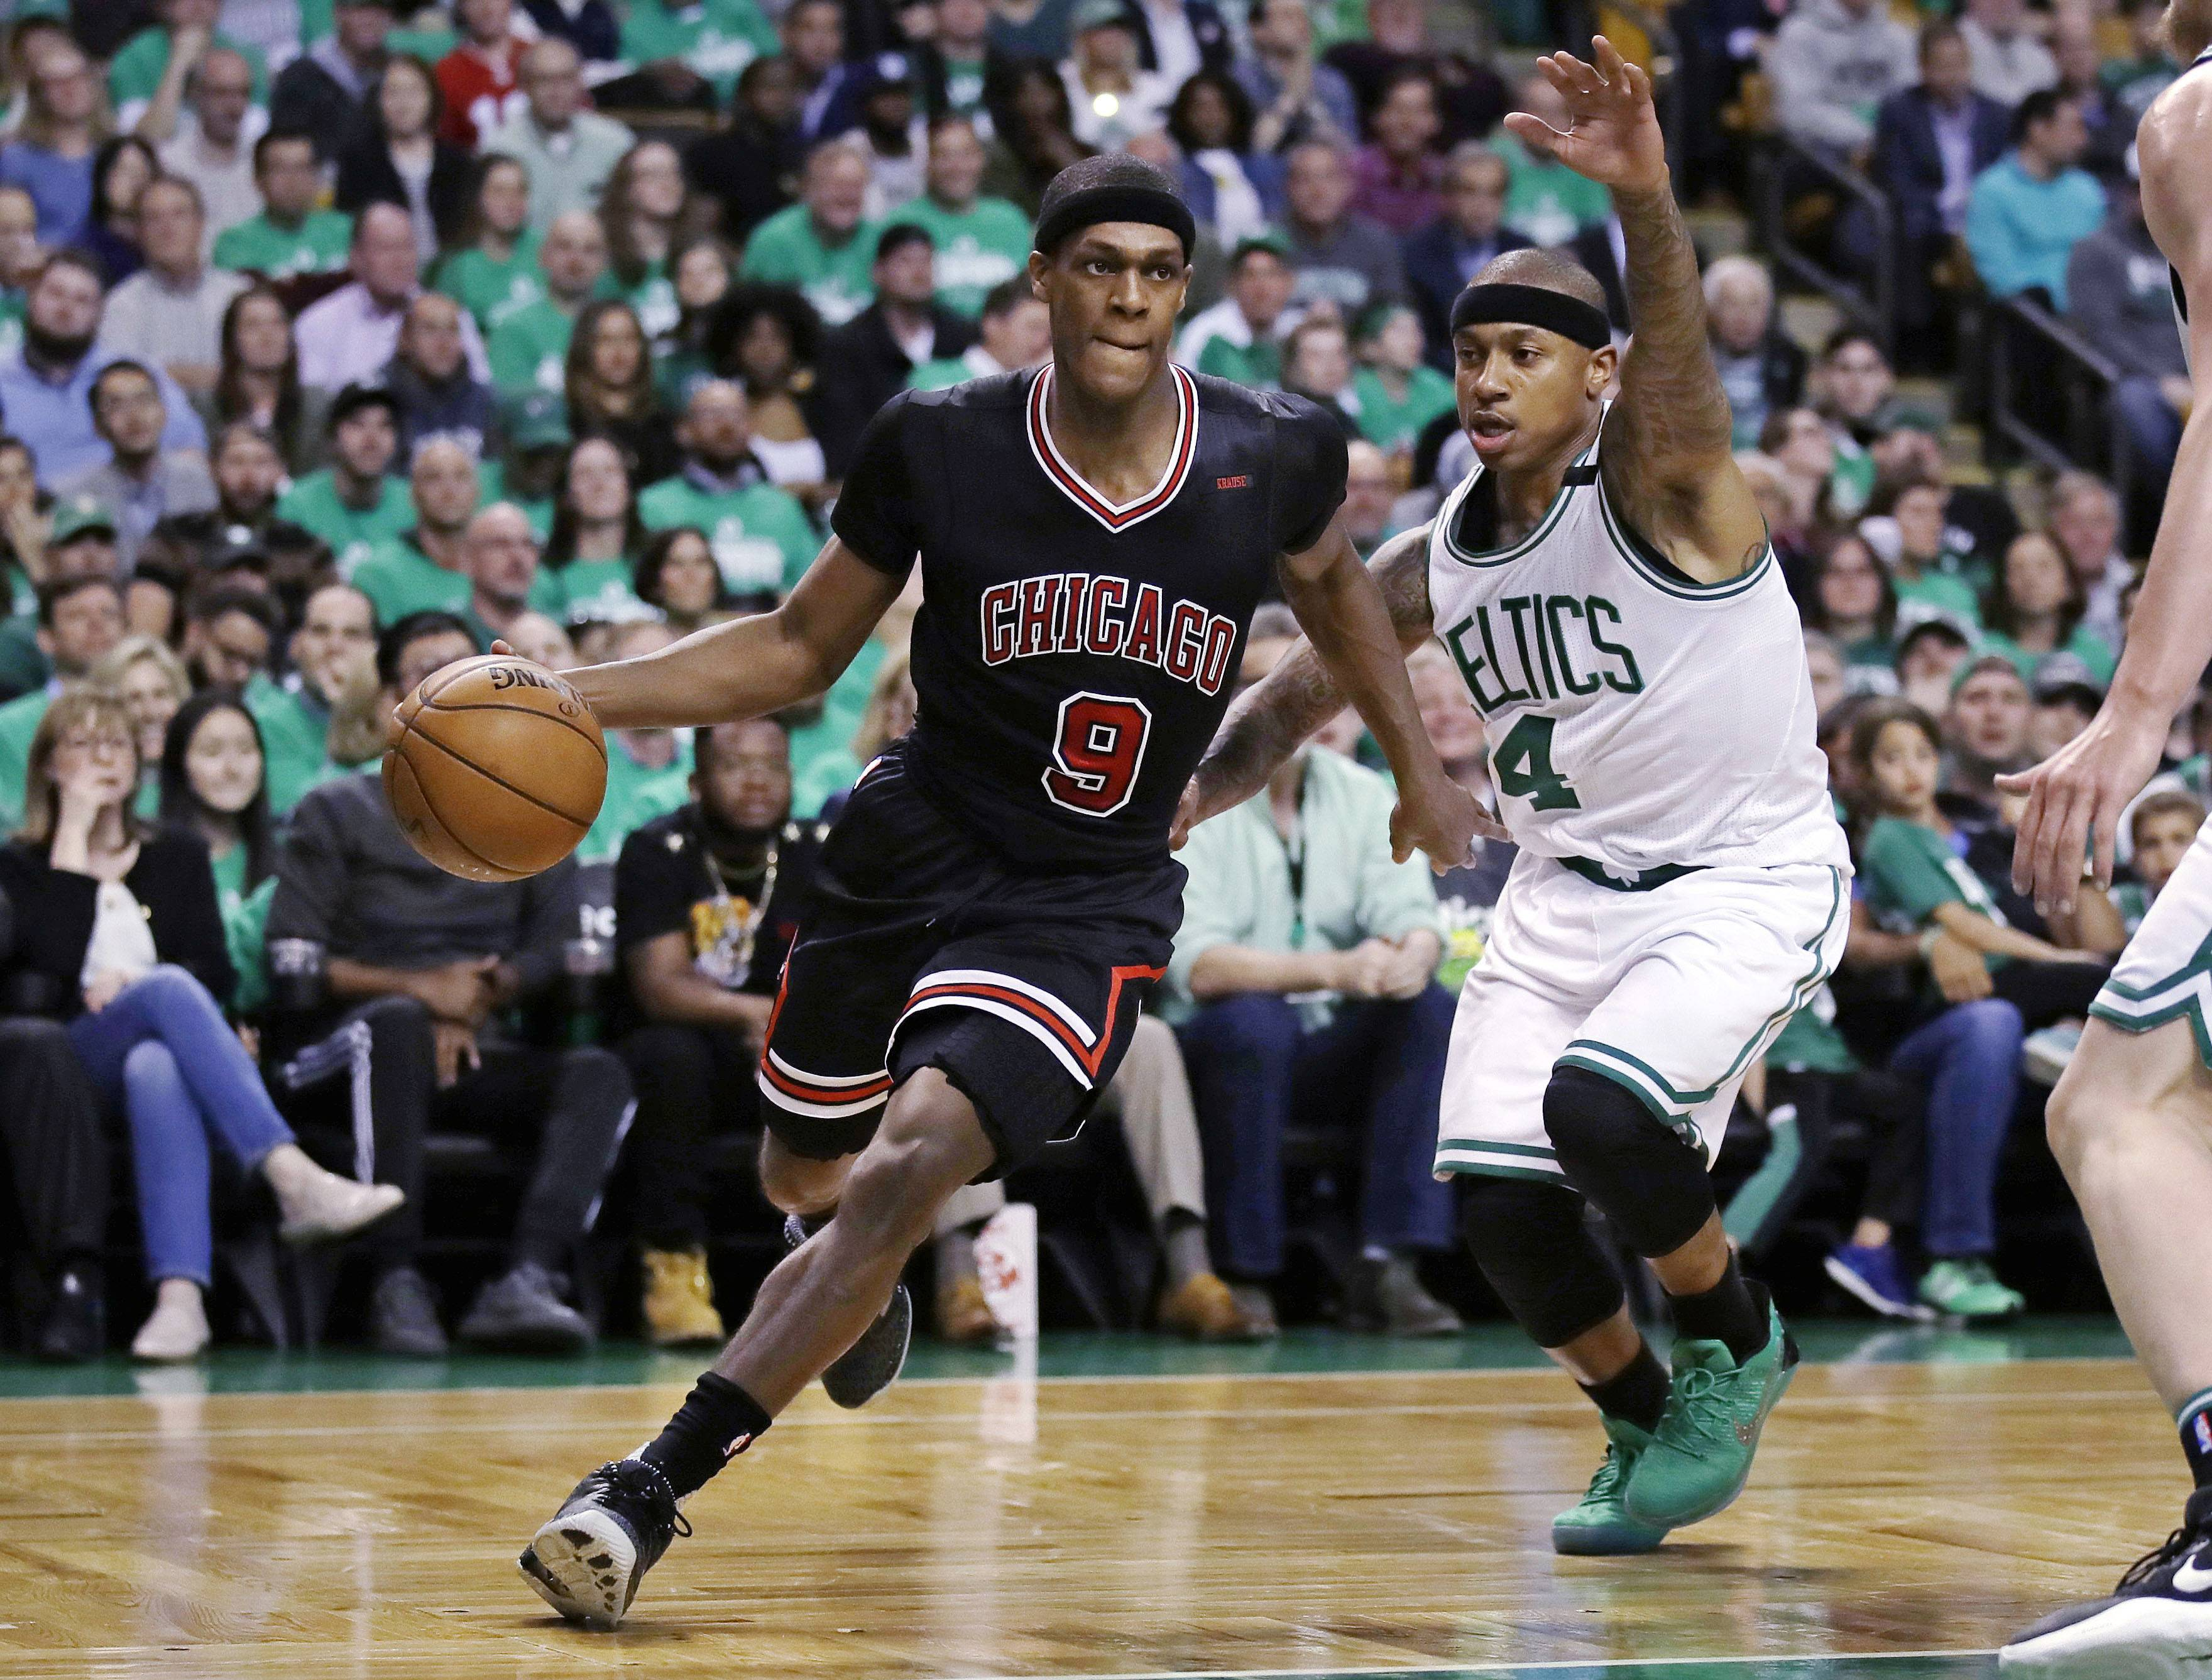 Butler thinks Bulls can learn from Rondo's example